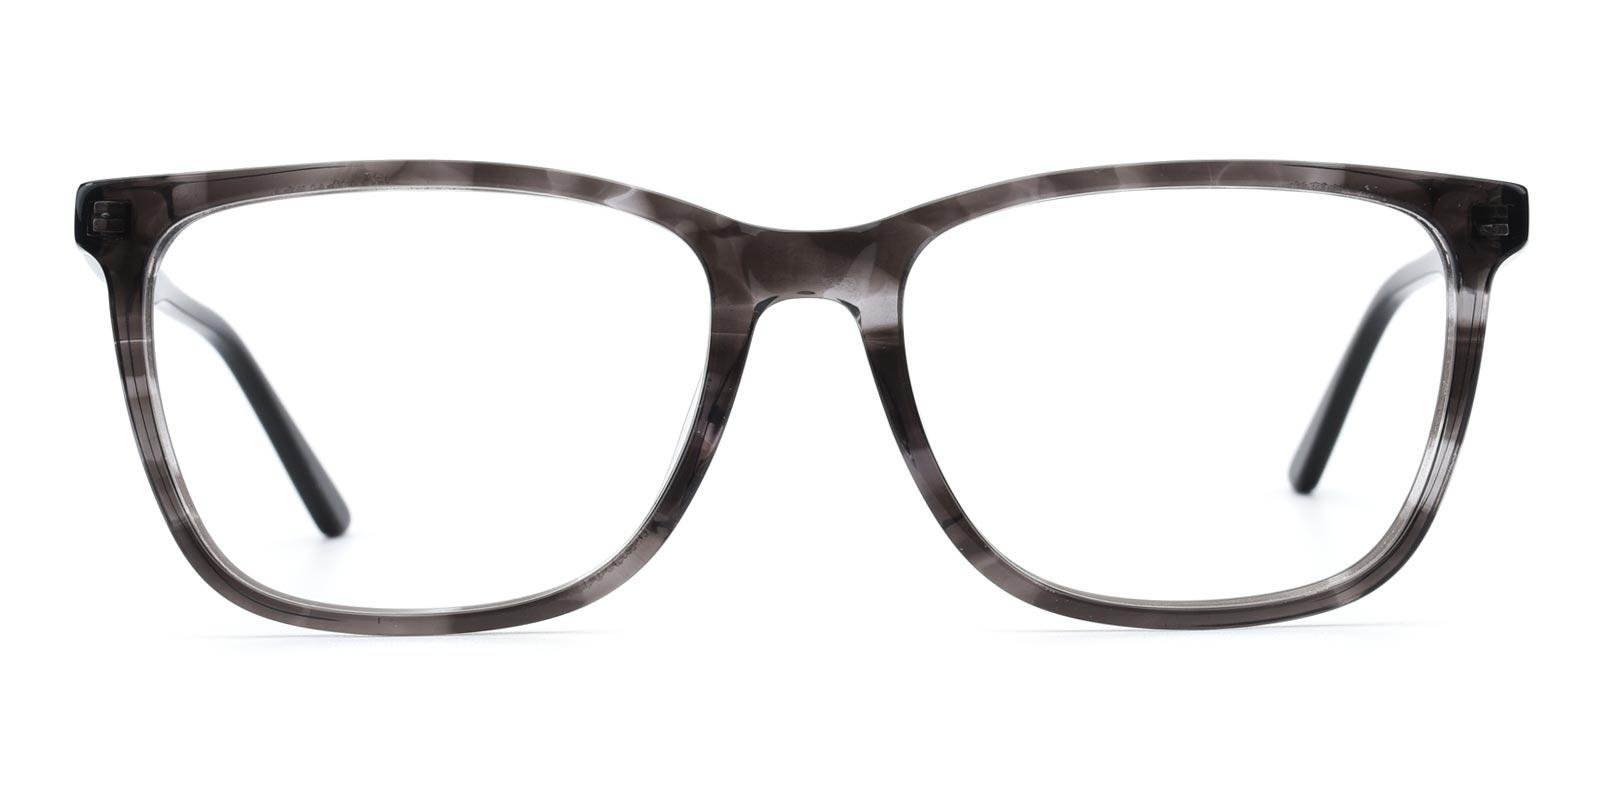 Genter-Gray-Square-Acetate-Eyeglasses-additional2